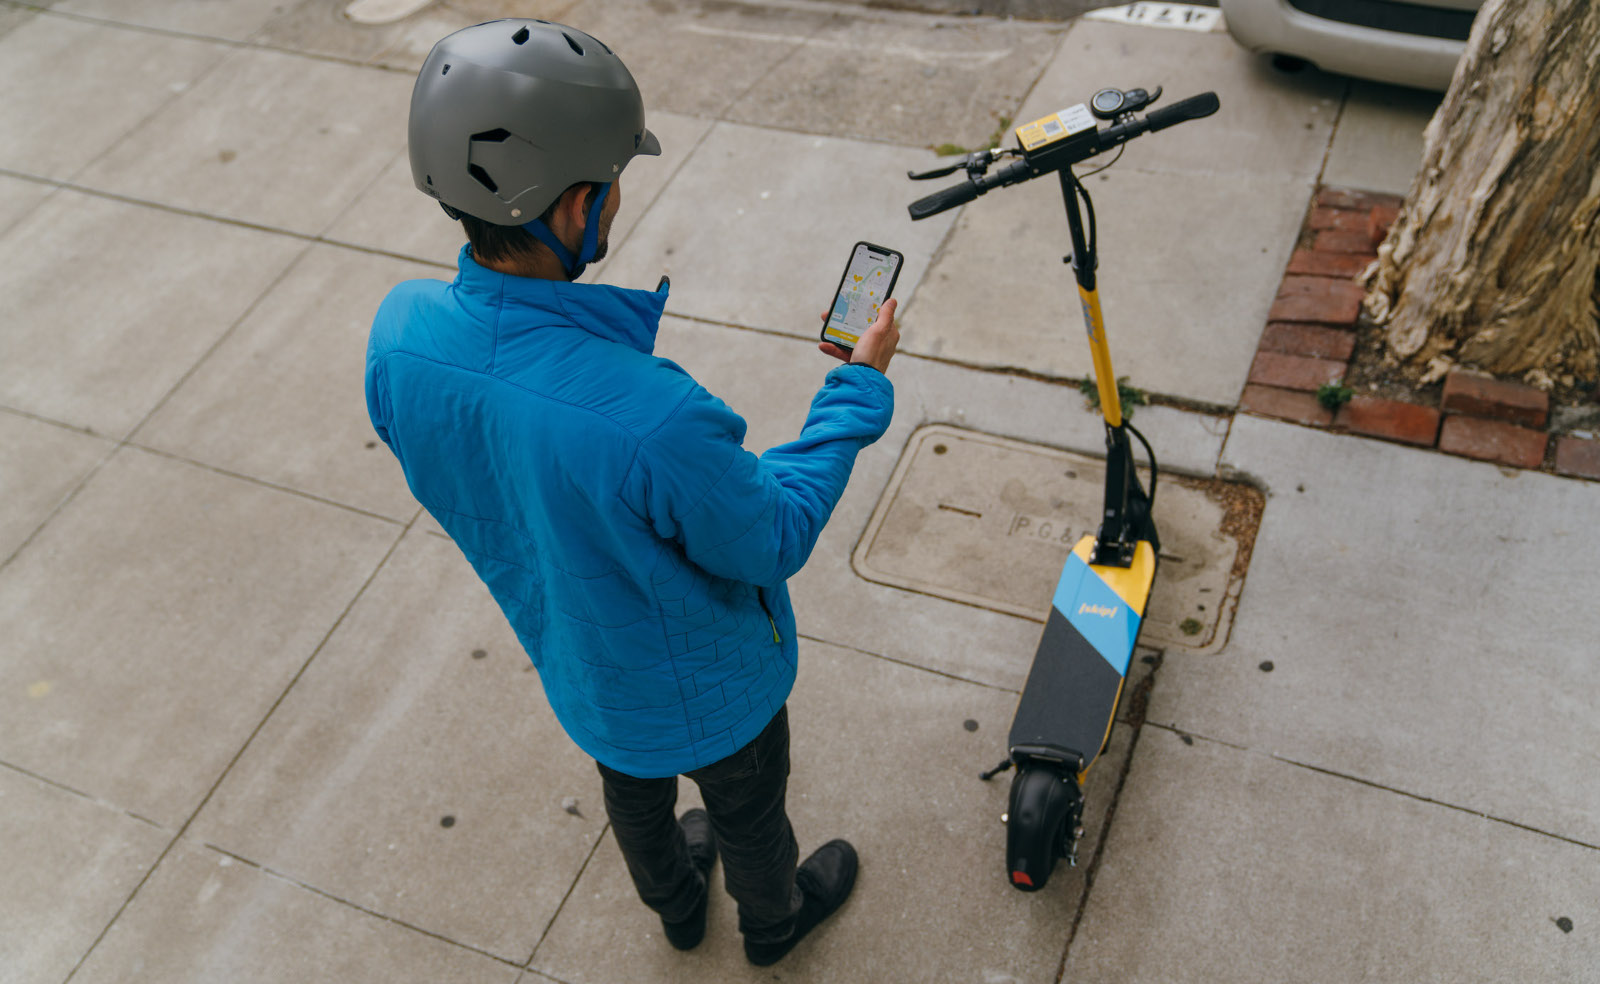 A new electric scooter-sharing service called Skip has launched in  Washington DC, promising sturdier and safer boards than its competitors'.